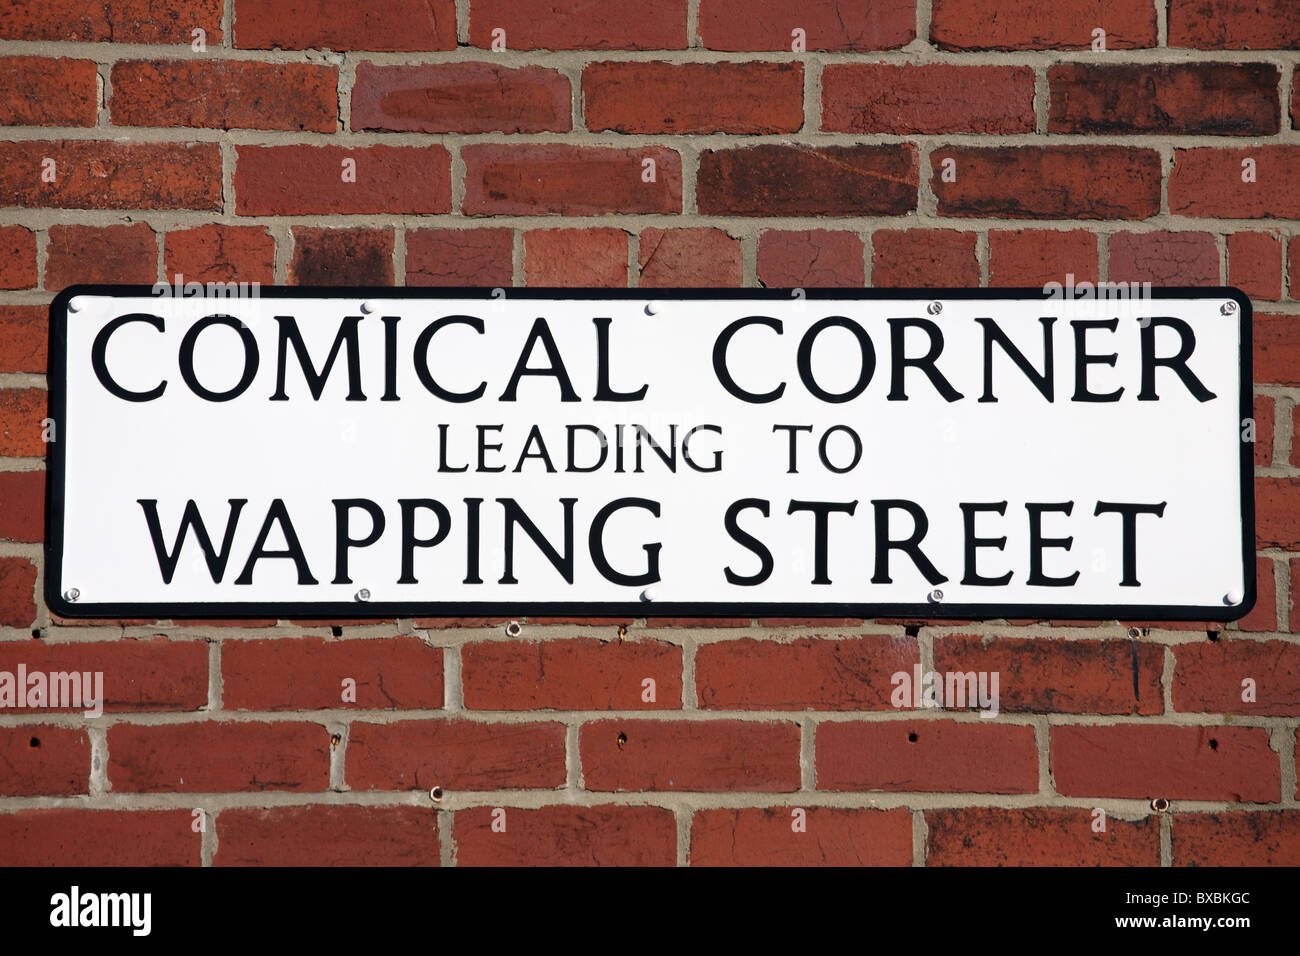 Amusing street sign Comical Corner Leading to Wapping Street, South Shields, Tyne and Wear, England, UK - Stock Image